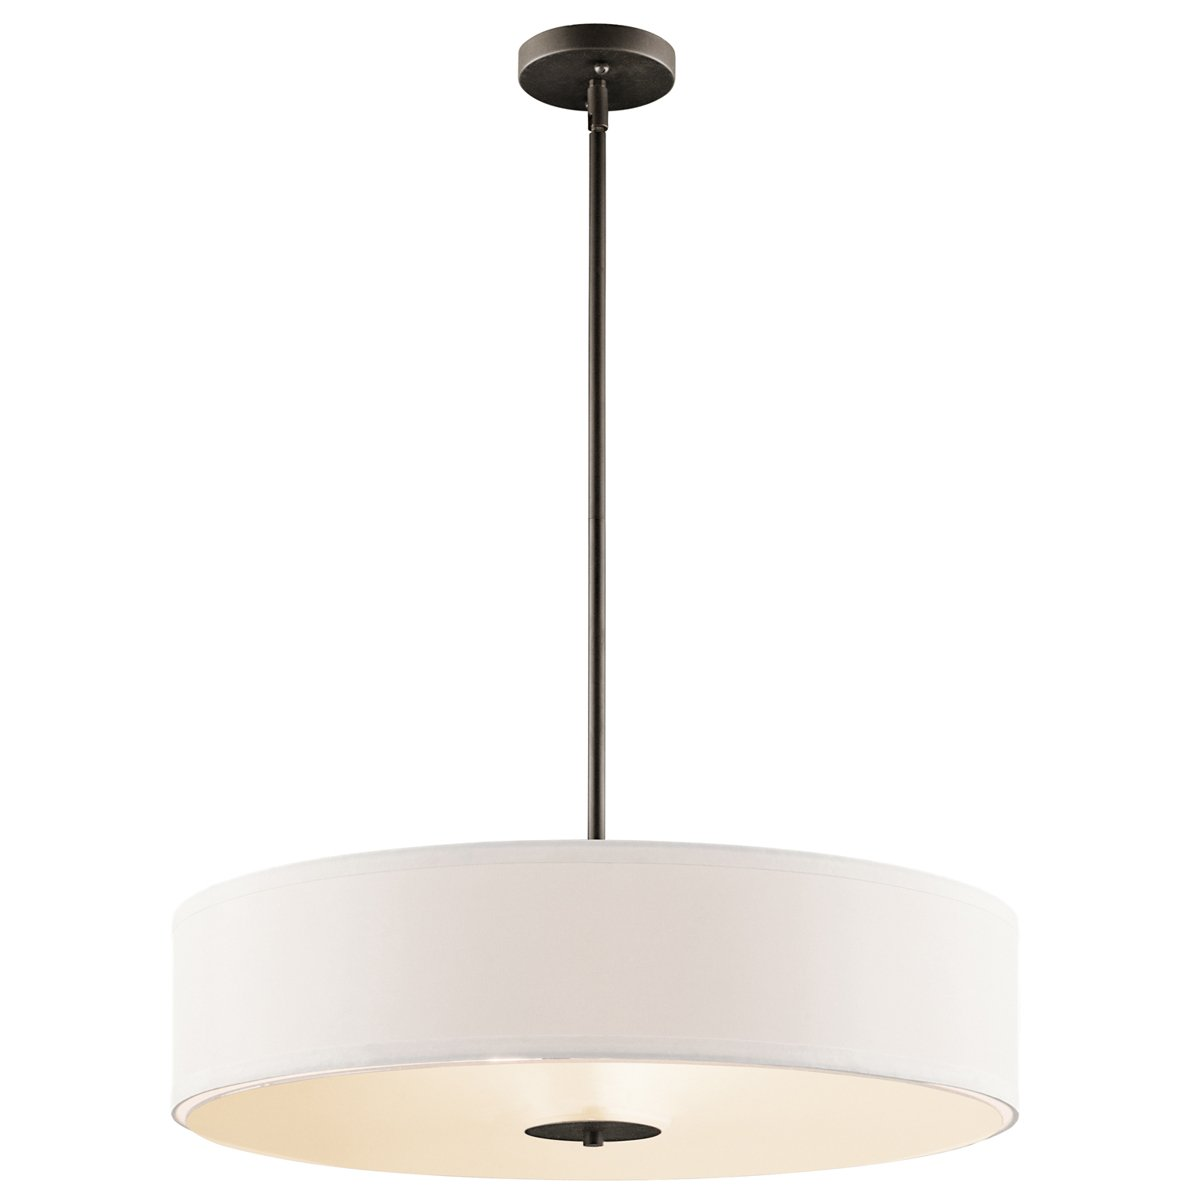 drum pendant lighting. Kichler 42121OZ Three Light Pendant/Semi Flush Mount - Drum Pendant Lighting Amazon.com T